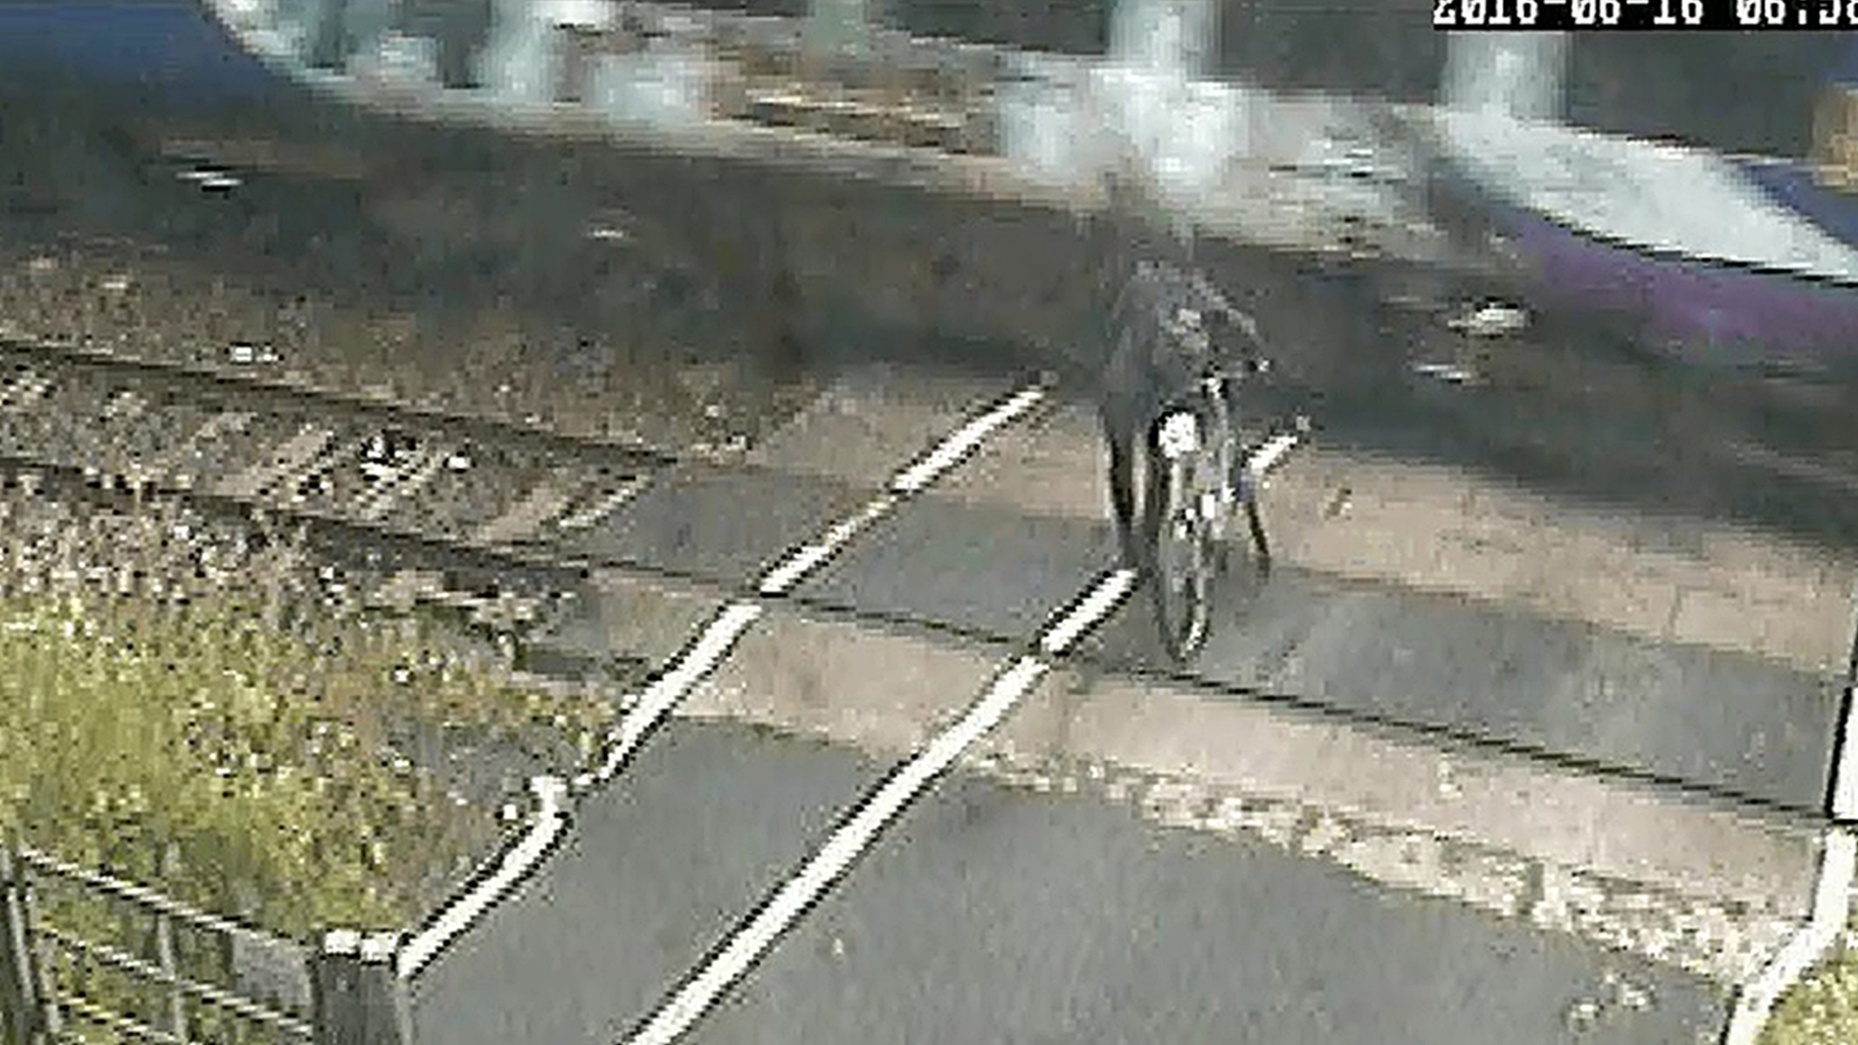 He came within inches of being hit at a level crossing in Leeds.